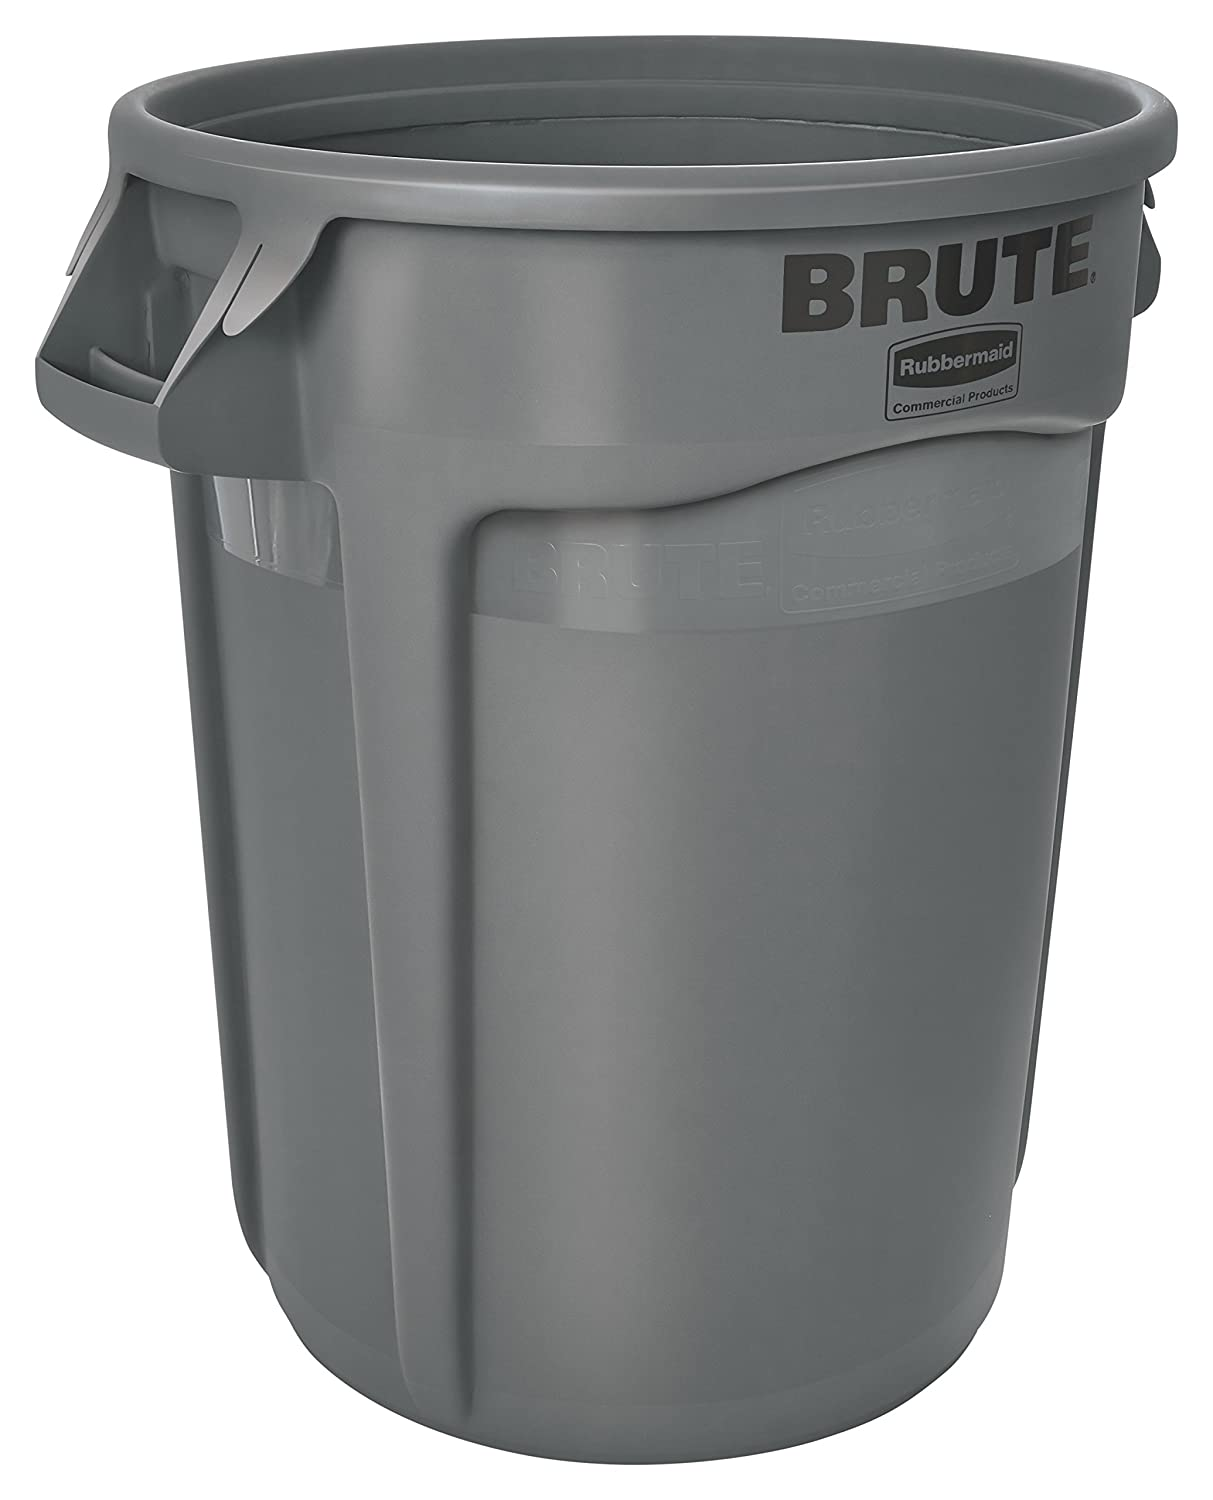 Rubbermaid FG261000GRAY-001 Brute Round Container, 37.9 L, Grey Newell Rubbermaid RMC1074_1801687